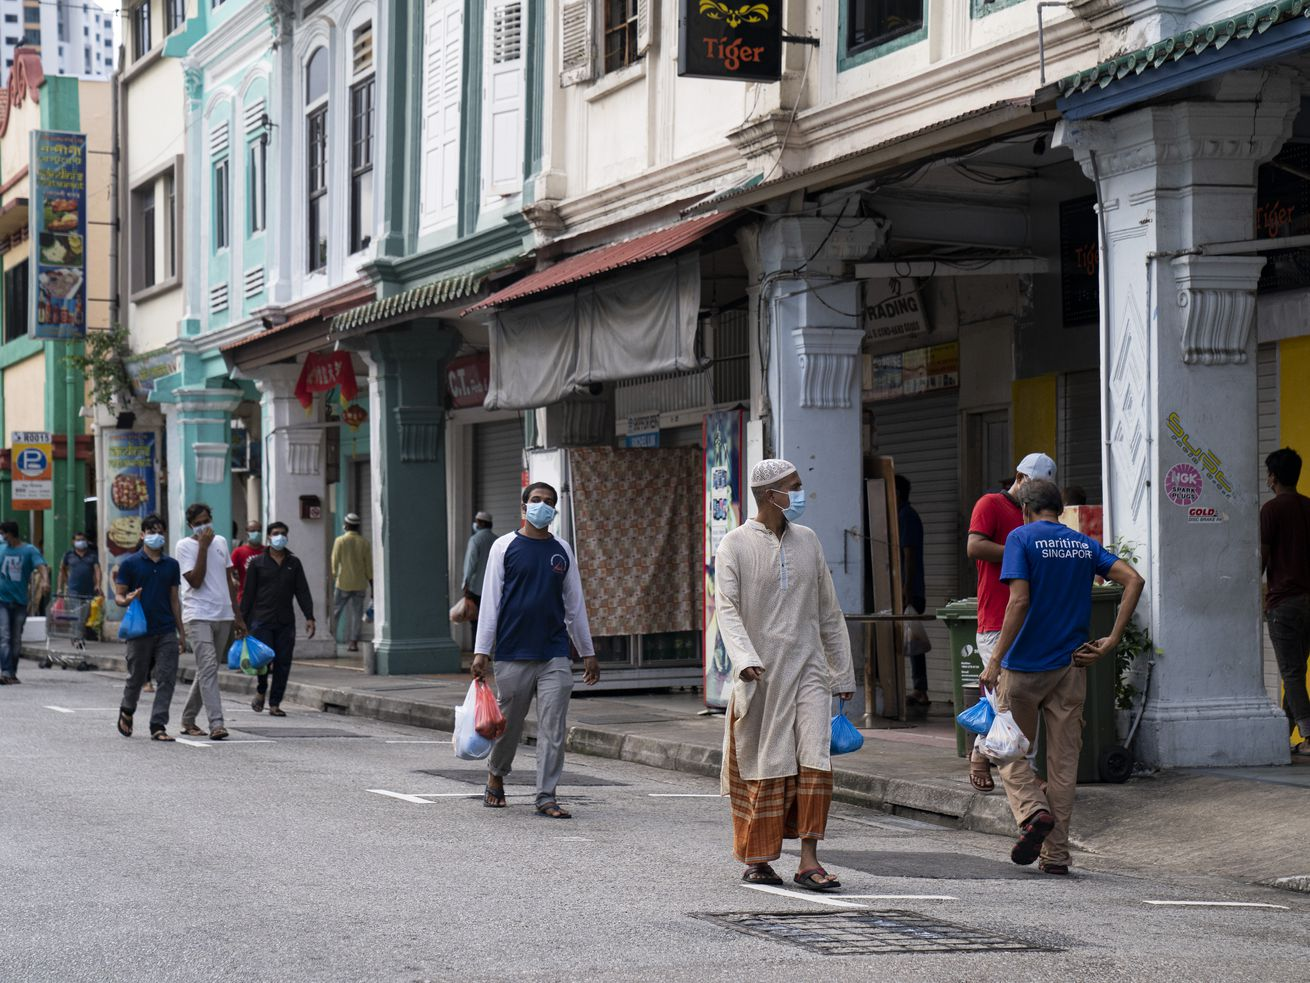 Migrant workers wearing protective masks return to their rented rooms in Little India after collecting free food distributed by NGOs on May 15, 2020, in Singapore.